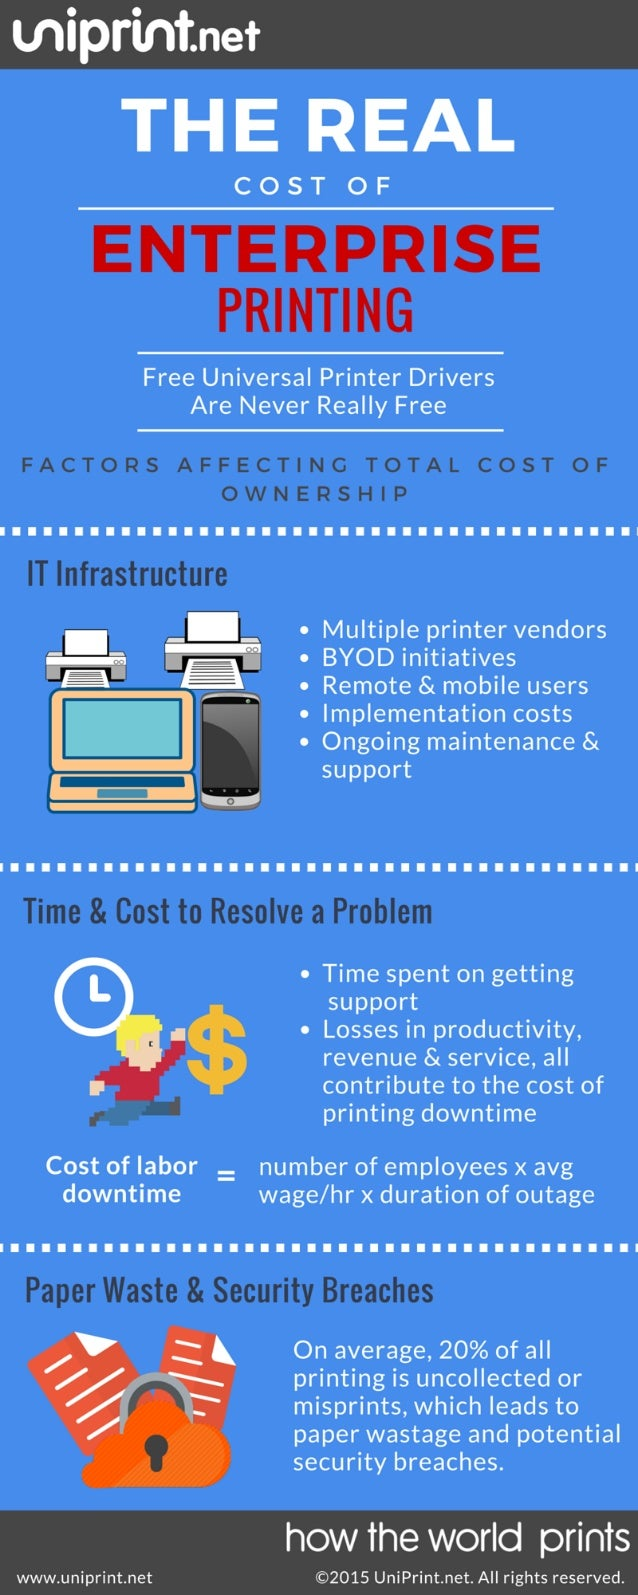 C THE REAL  COST OF  ENTERPRISE PRINTING  Free Universal Printer Drivers Are Never Really Free  FACTORS AFFECTING TOTAL CO...